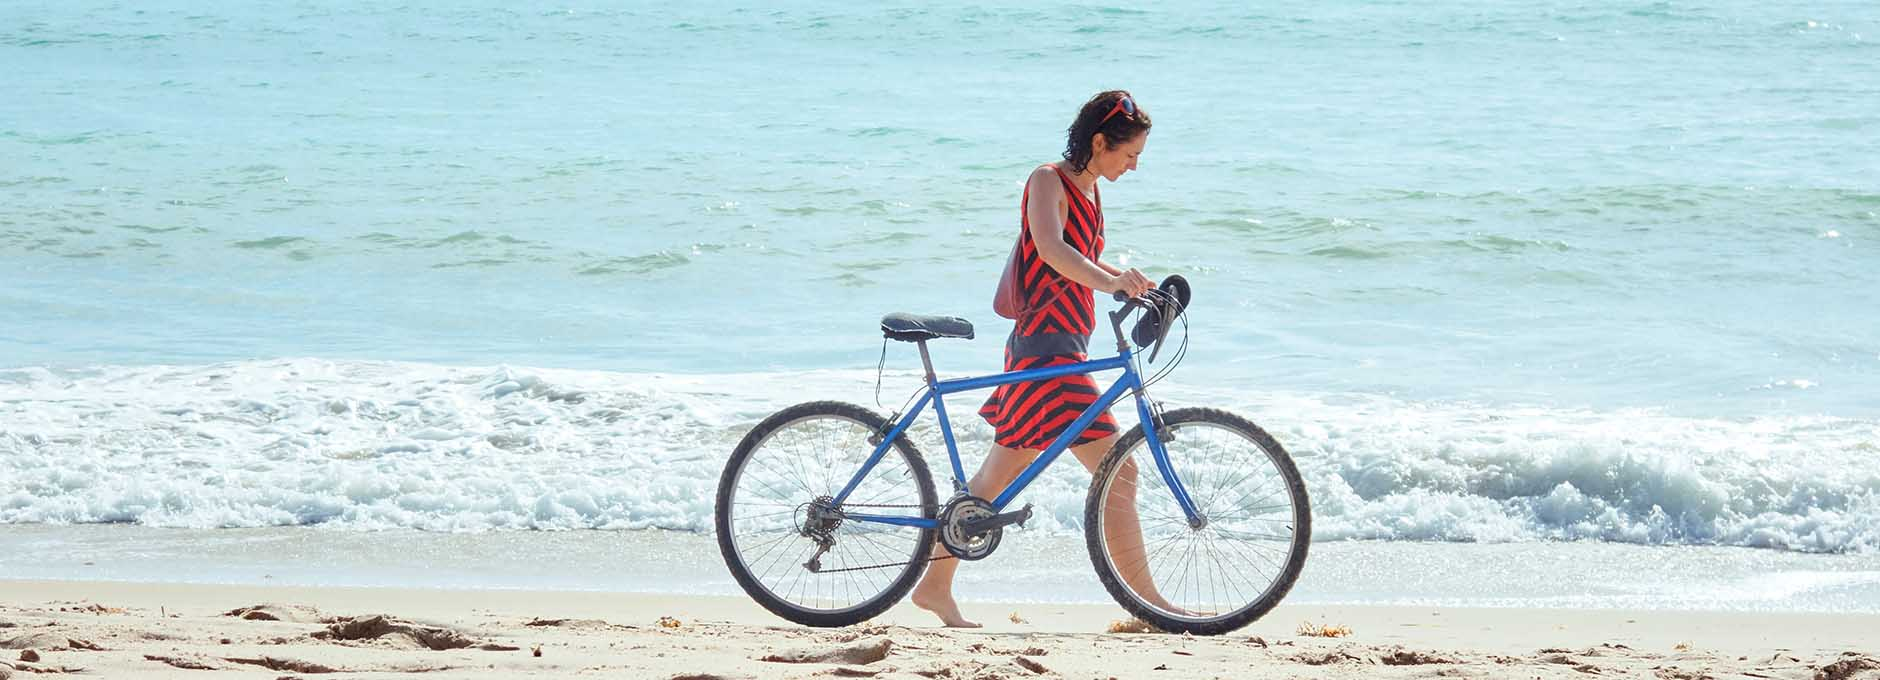 Woman walking on beach with bicycle